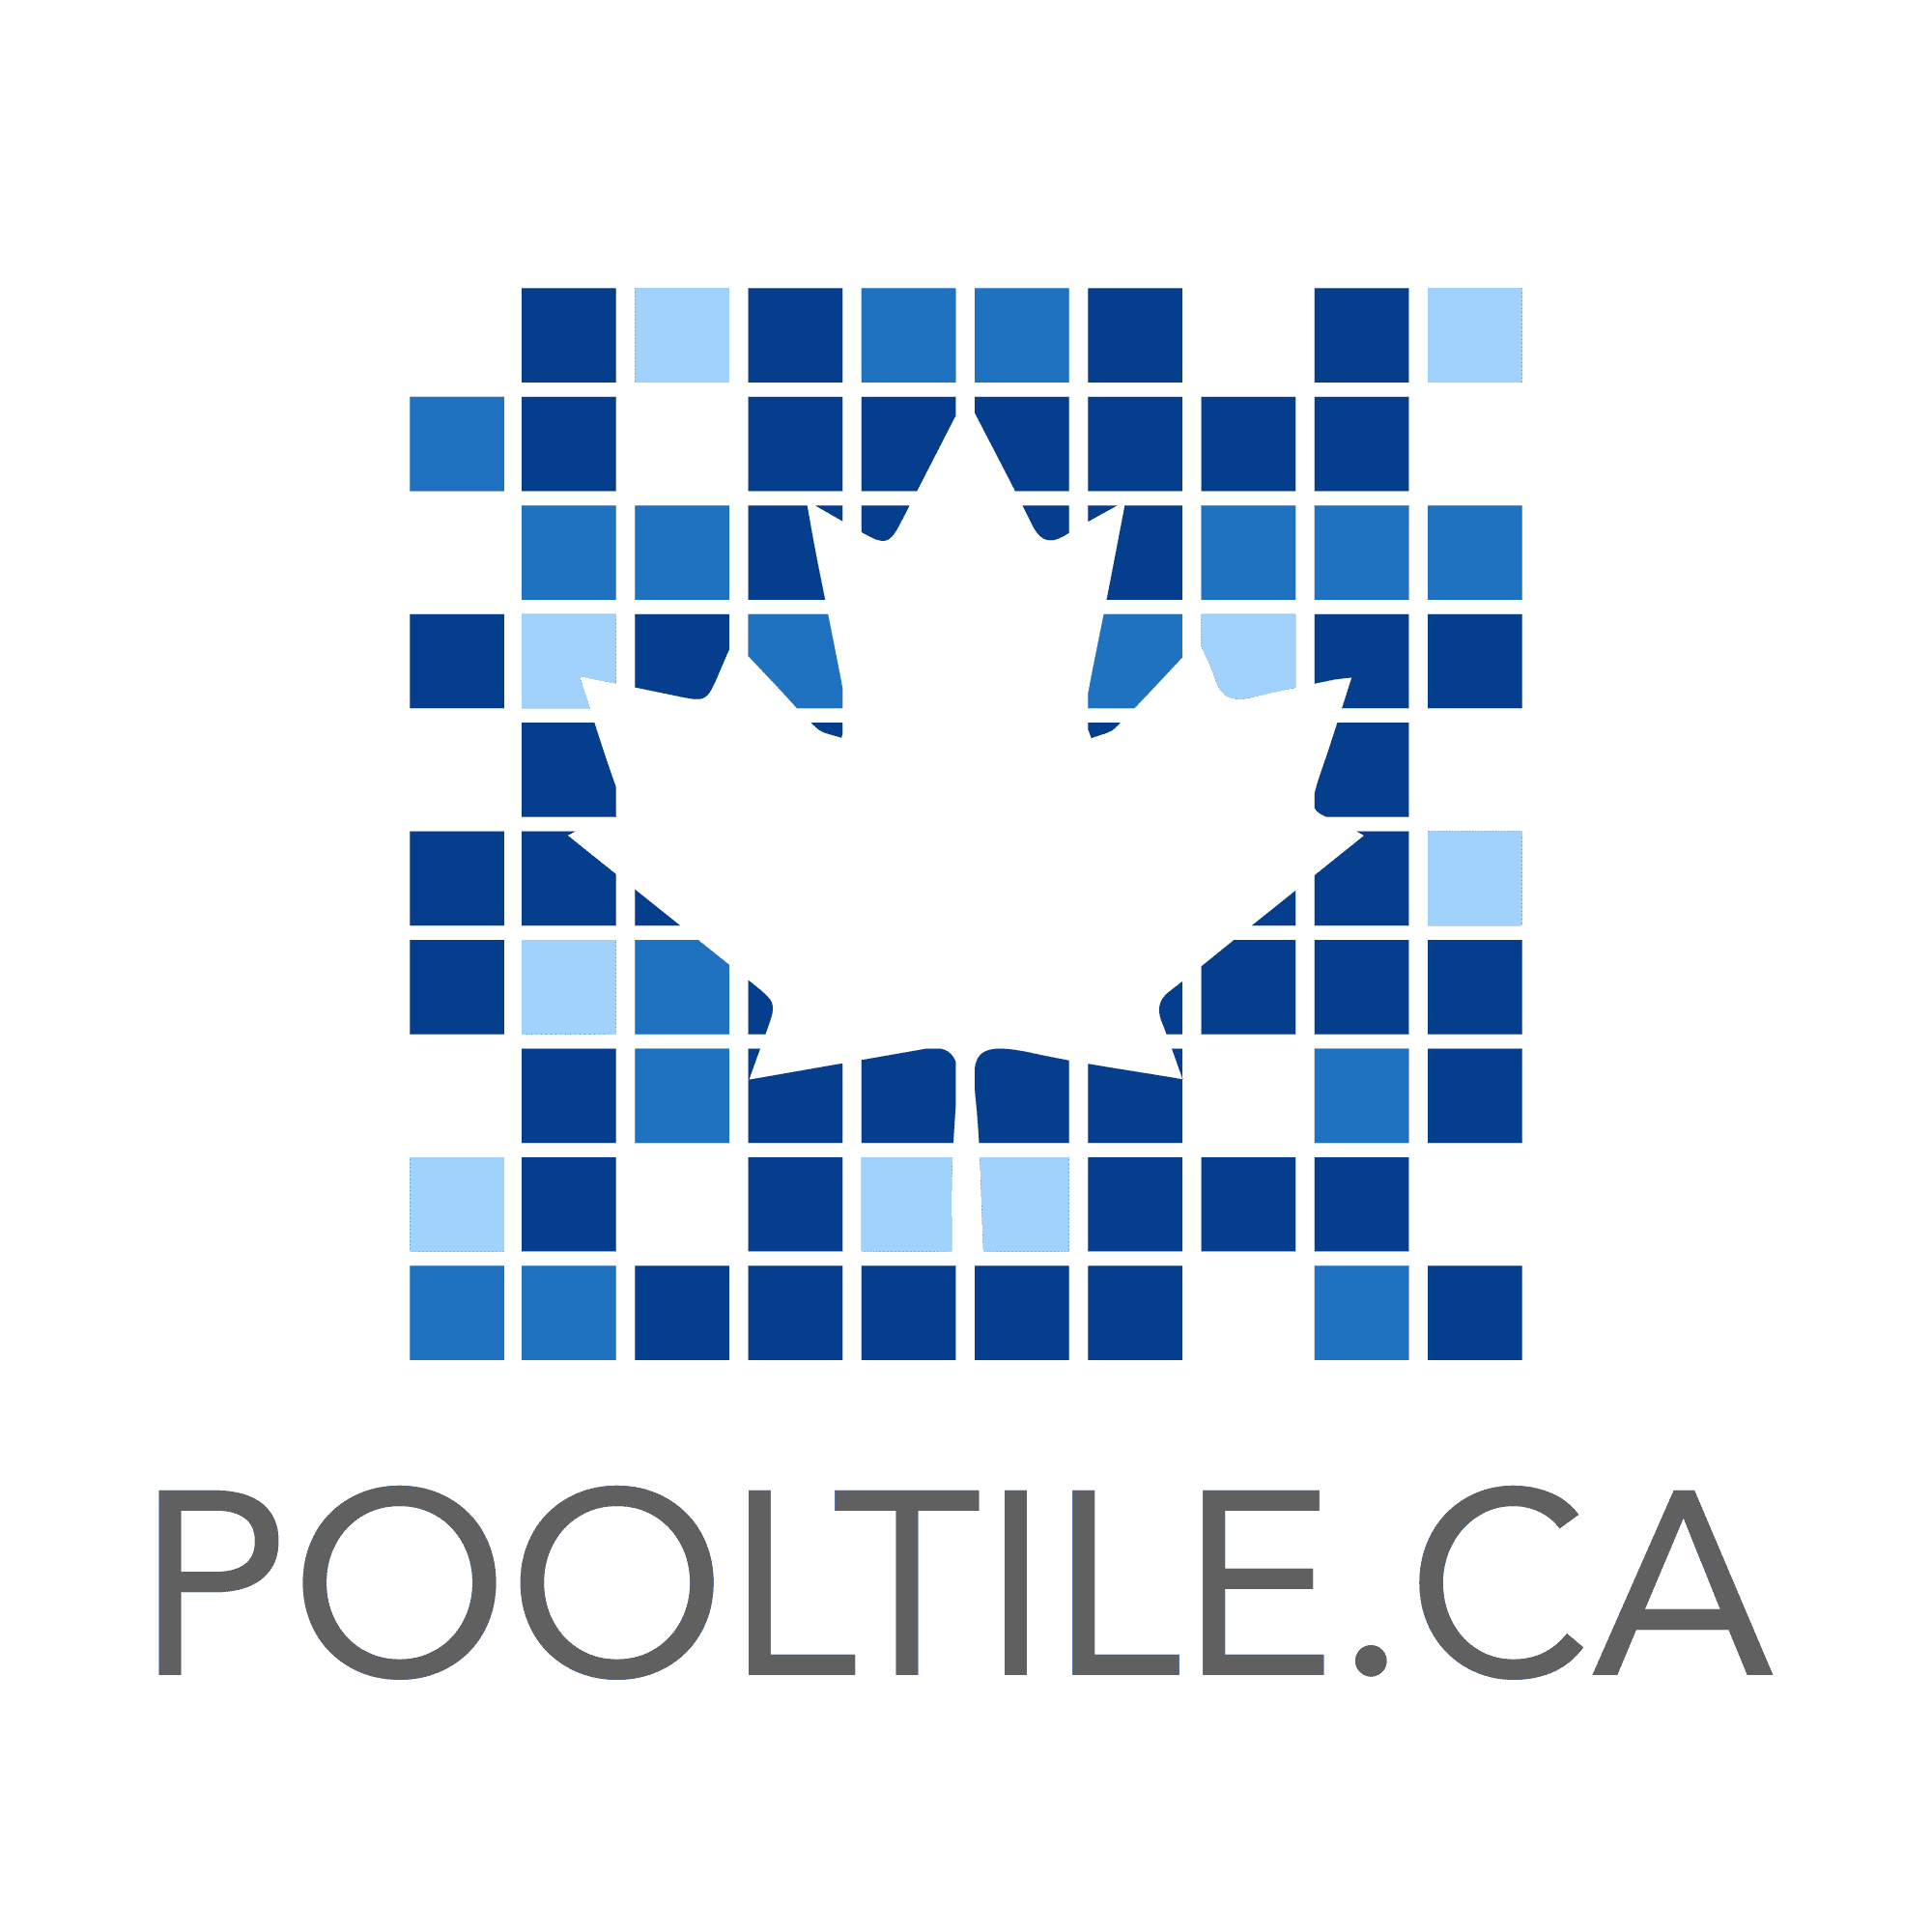 POOLTILE.CA